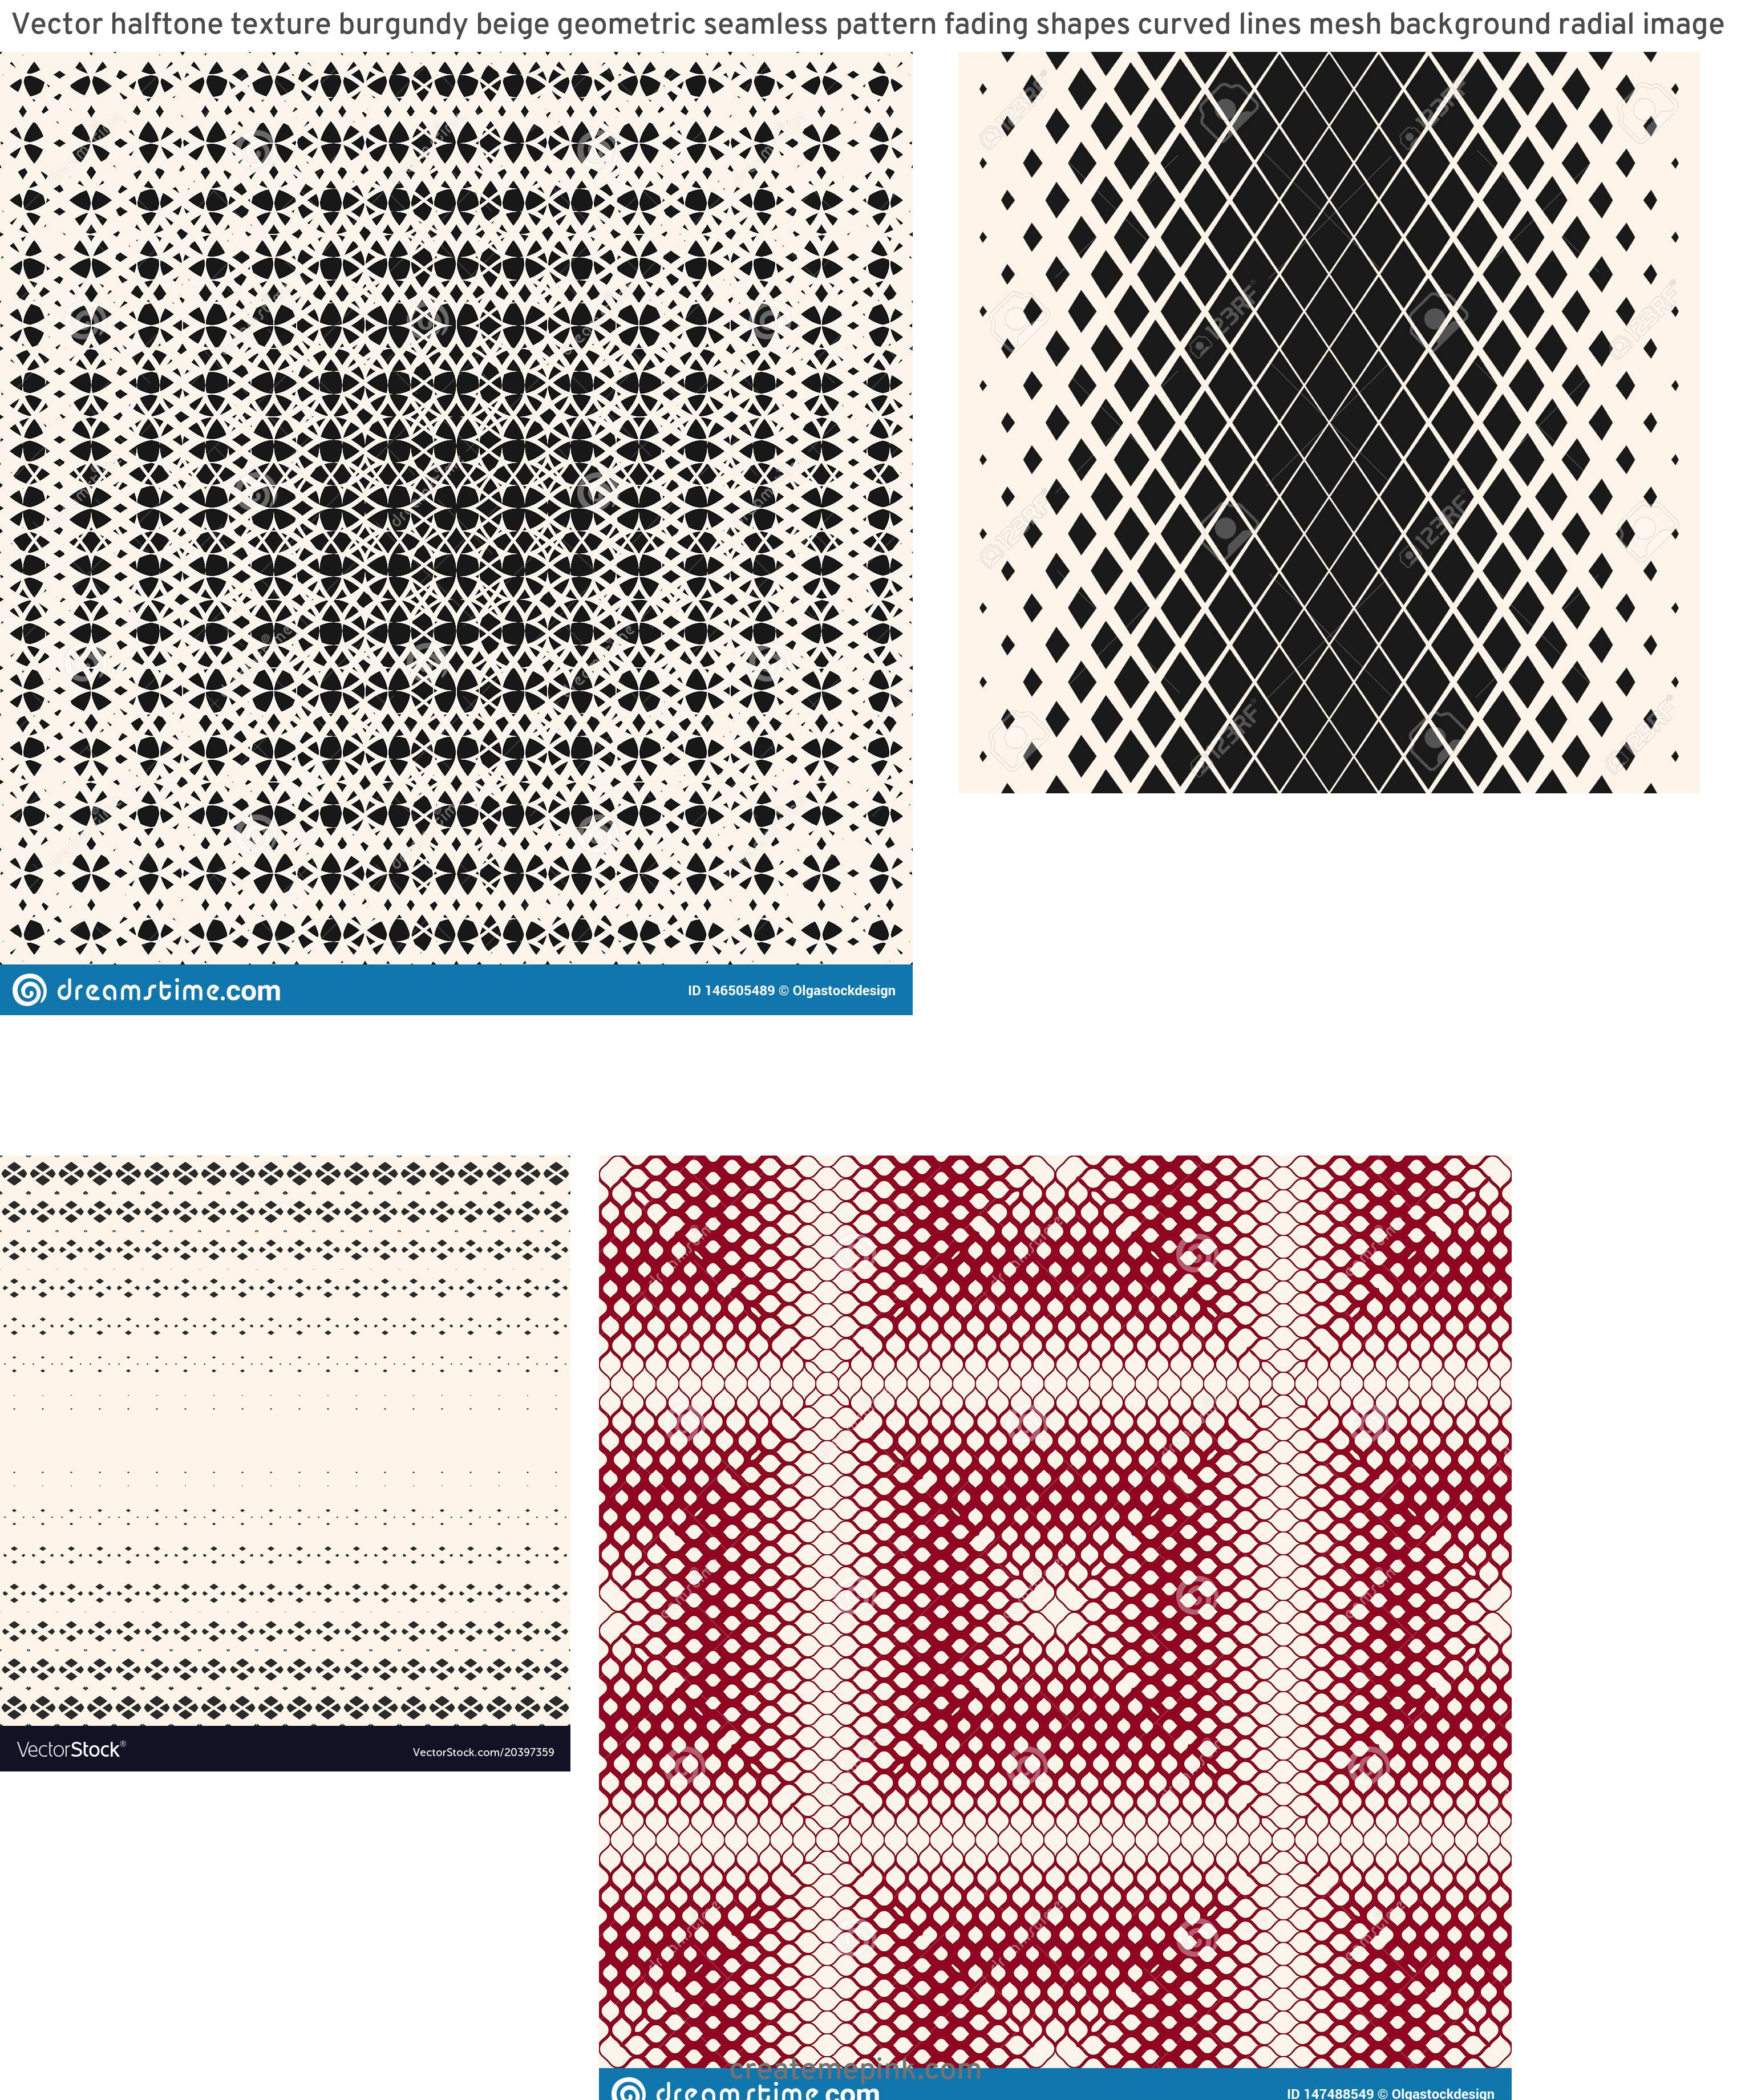 Modern Fading Vector Pattern: Vector Halftone Texture Burgundy Beige Geometric Seamless Pattern Fading Shapes Curved Lines Mesh Background Radial Image